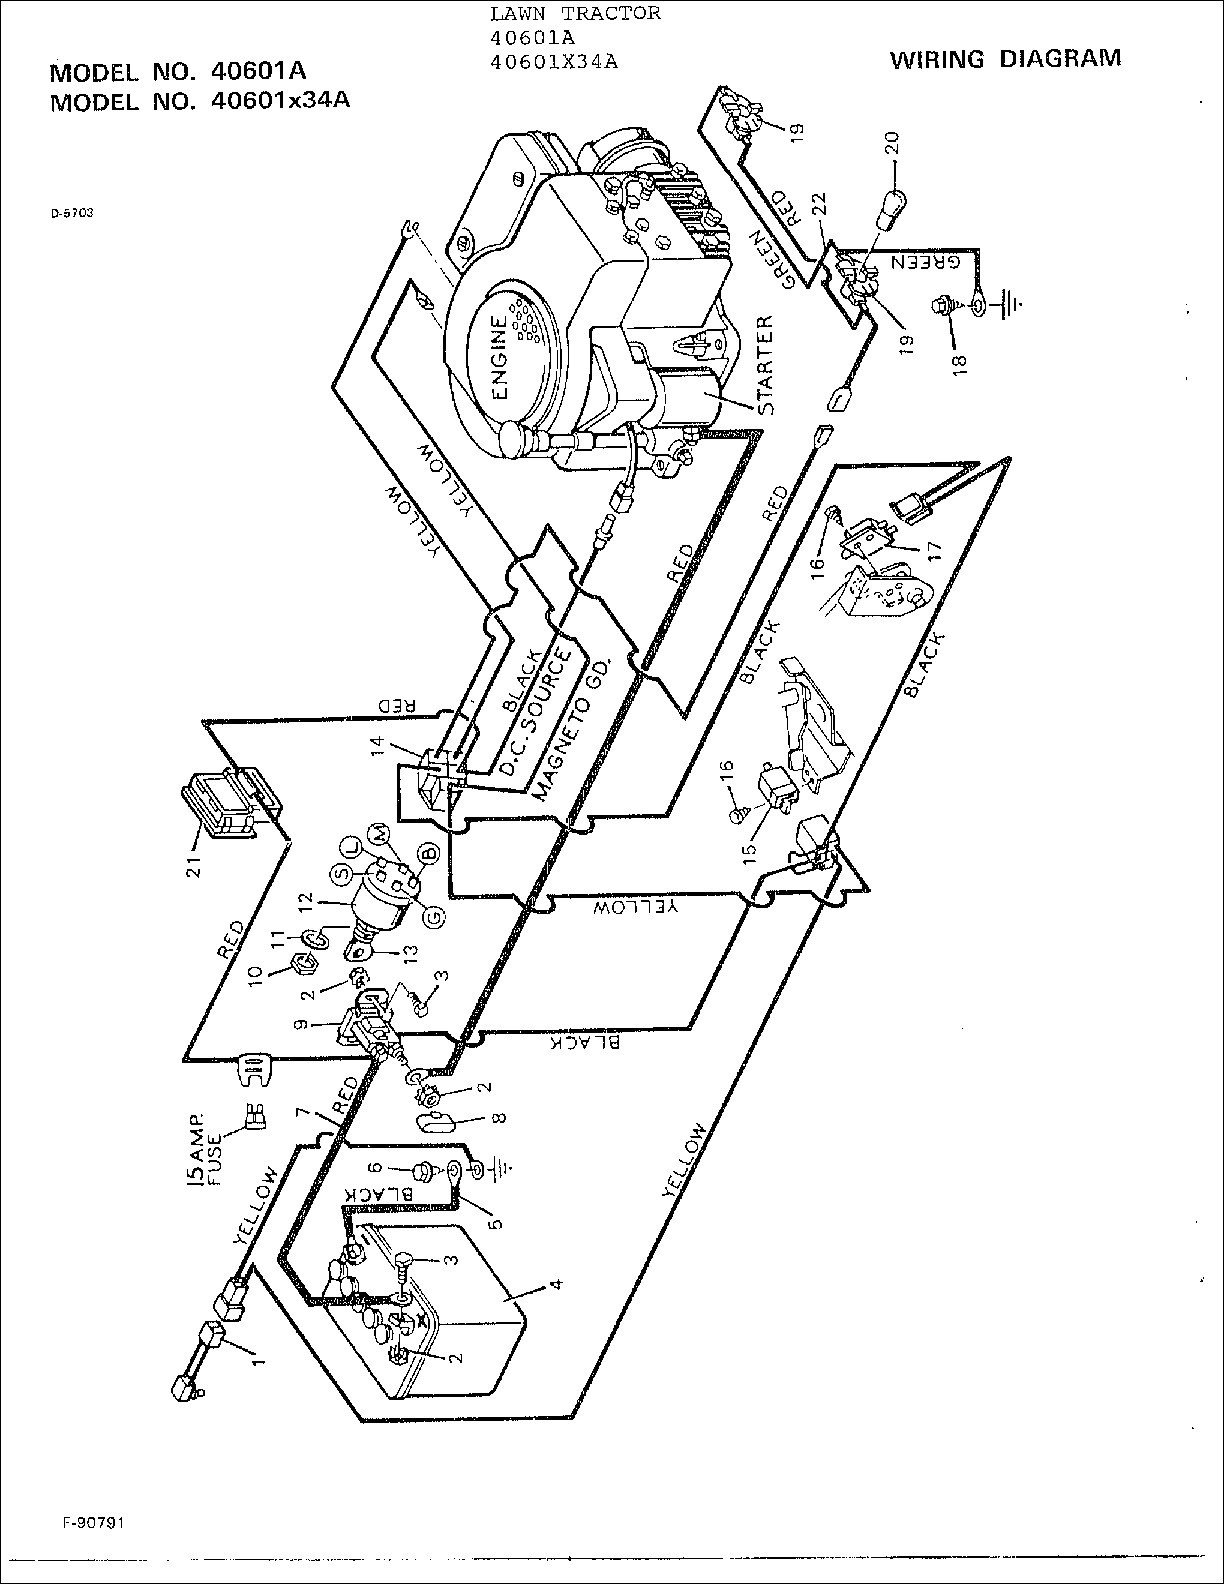 Murray Lawn Mower Ignition Switch Wiring Diagram Unique Of Like - Murray Lawn Mower Ignition Switch Wiring Diagram